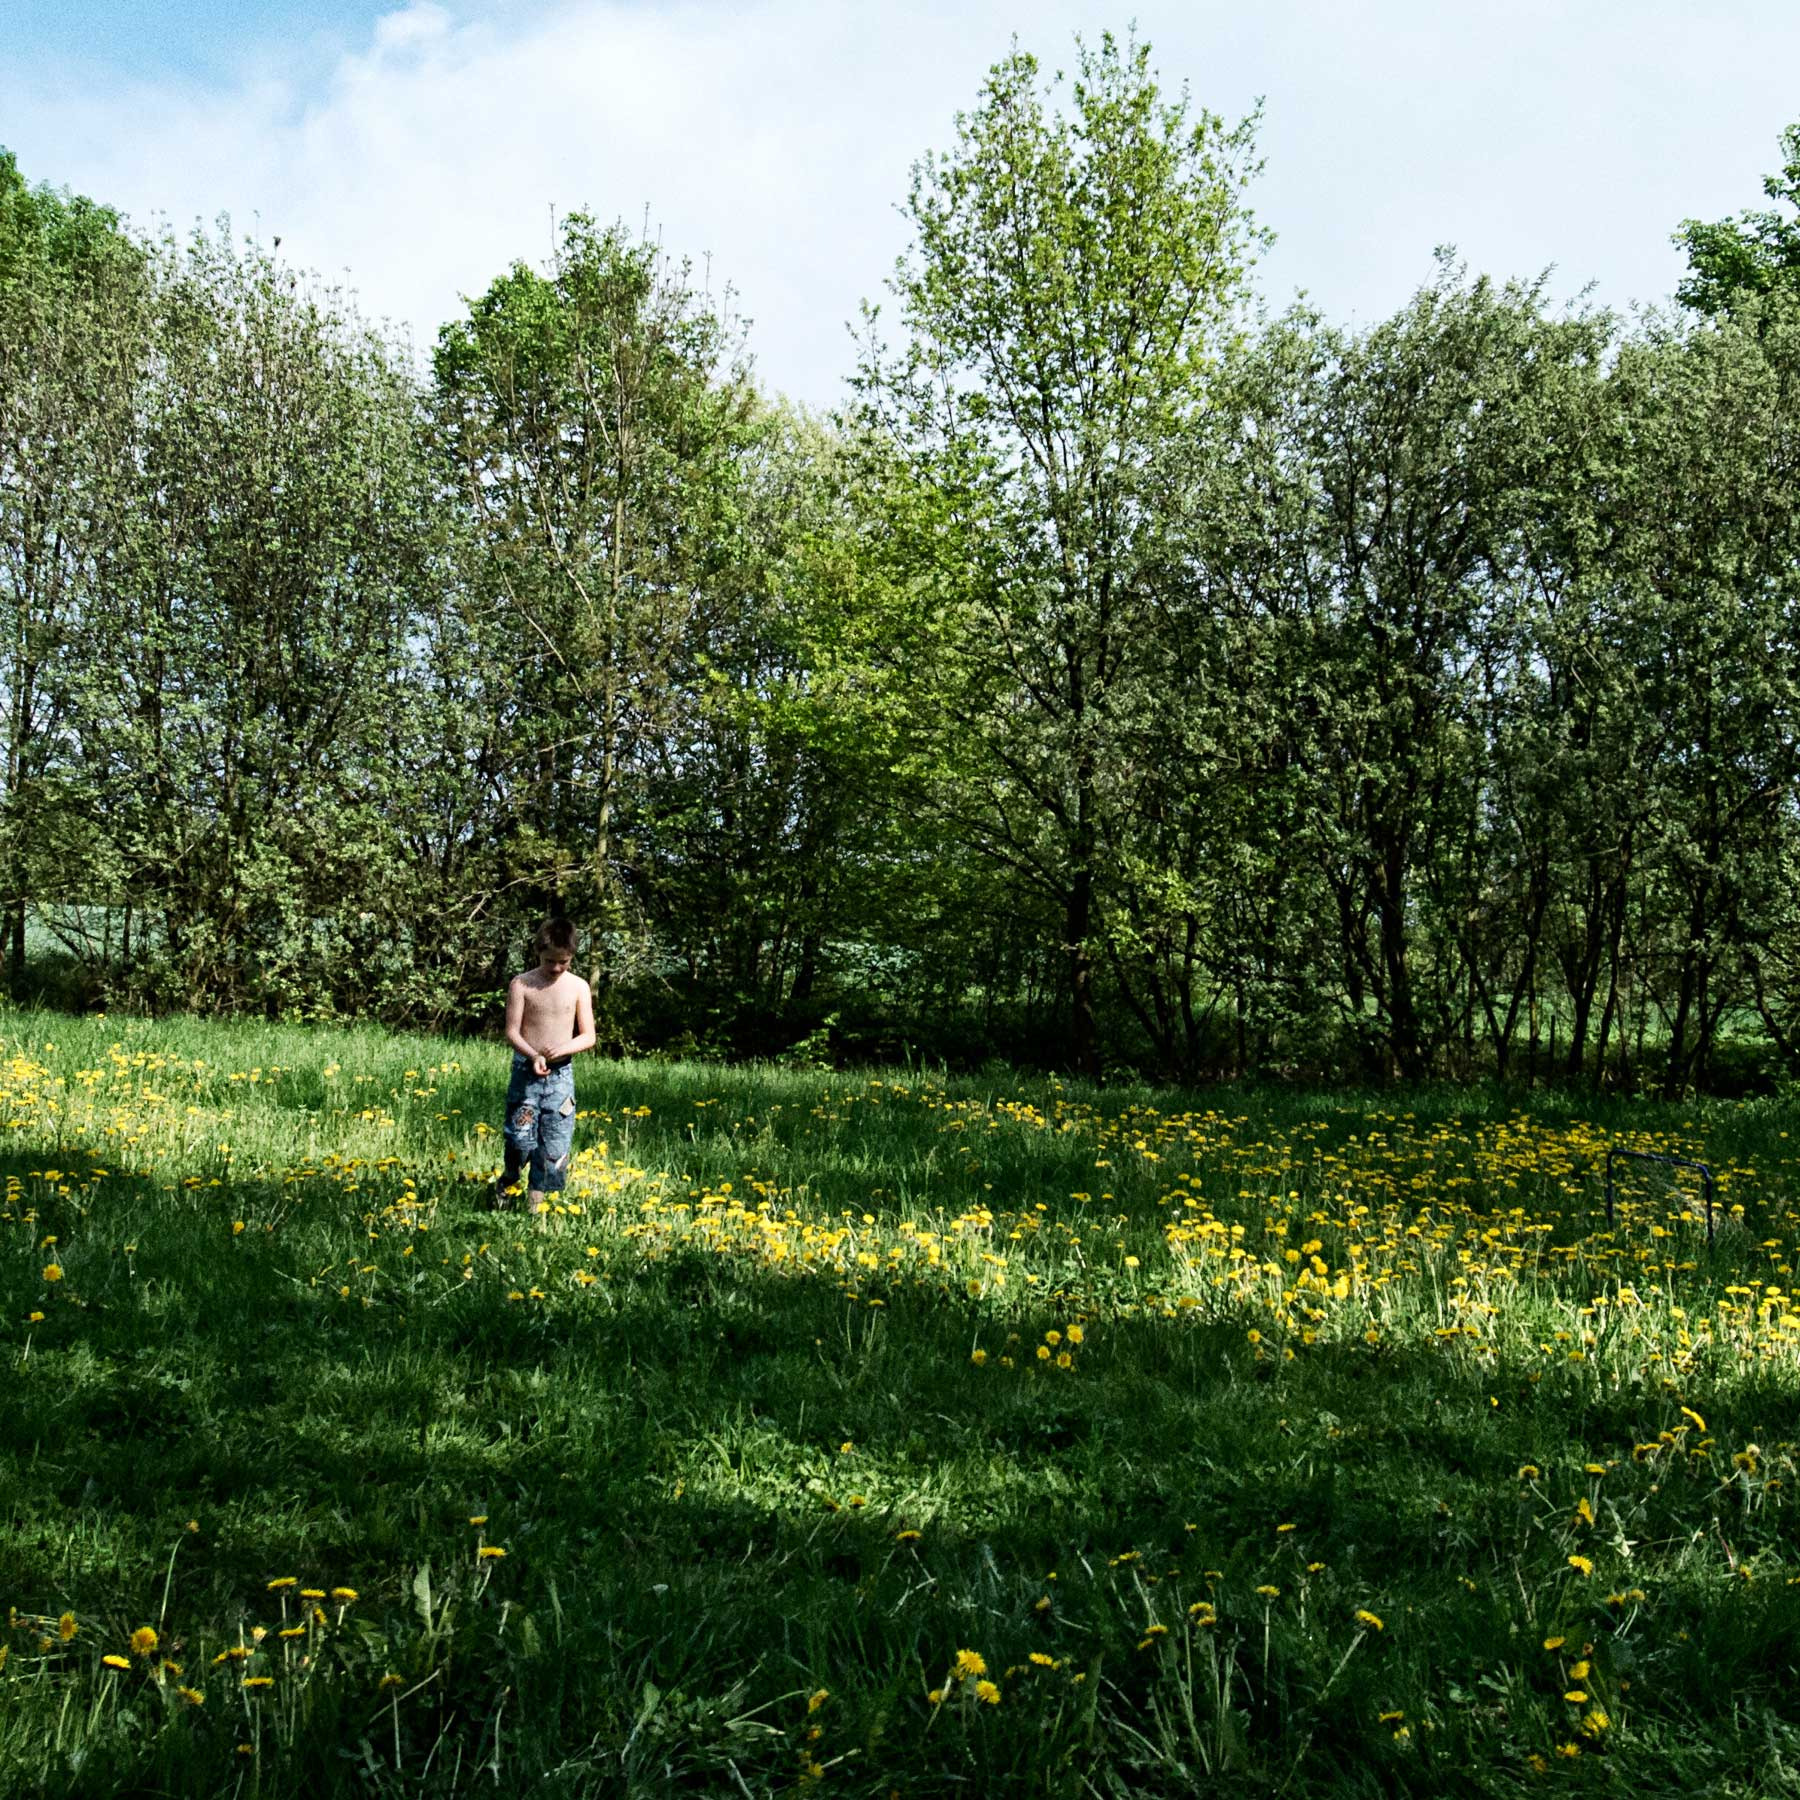 A young boy plays alone in an open field.